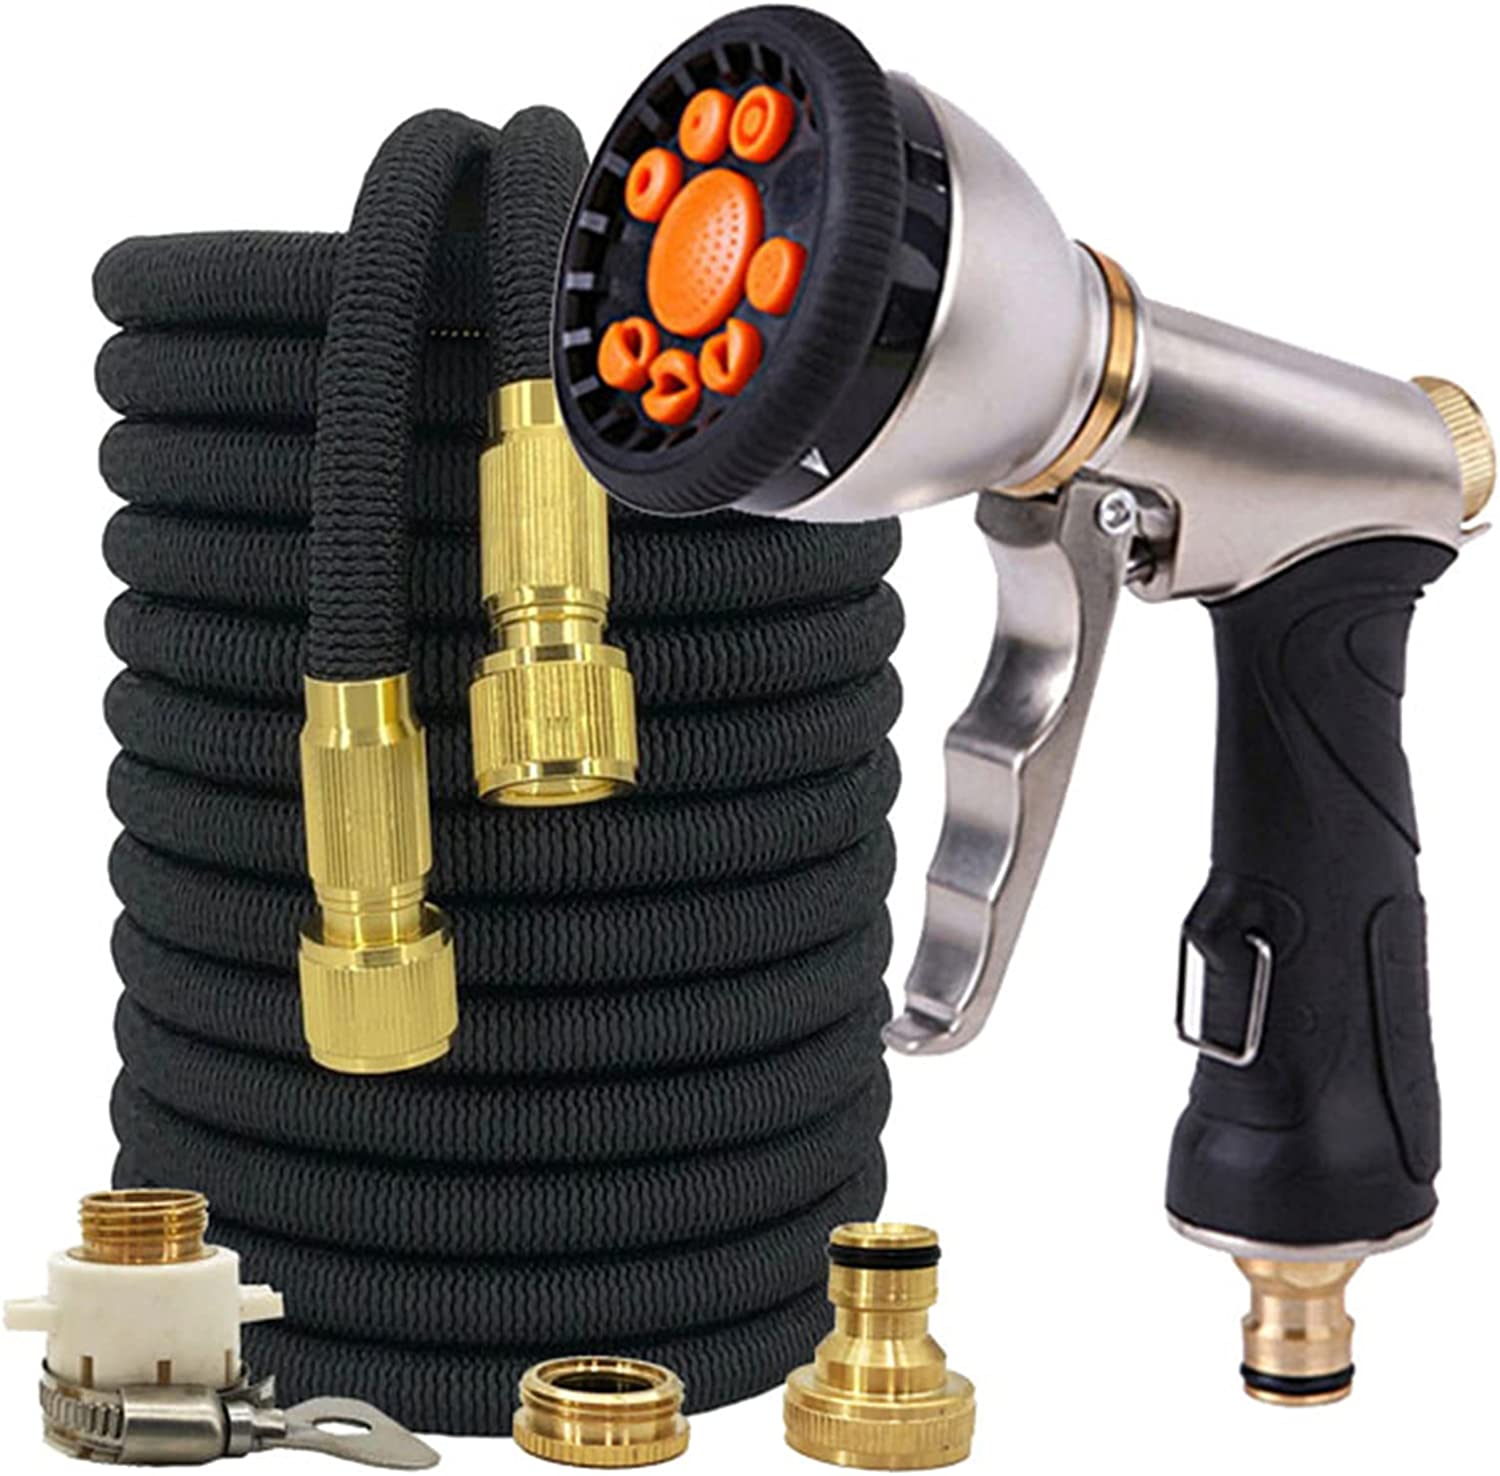 Max 56% OFF Gmjay Expandable cheap Garden Hose Water Functi 9 Gardening with